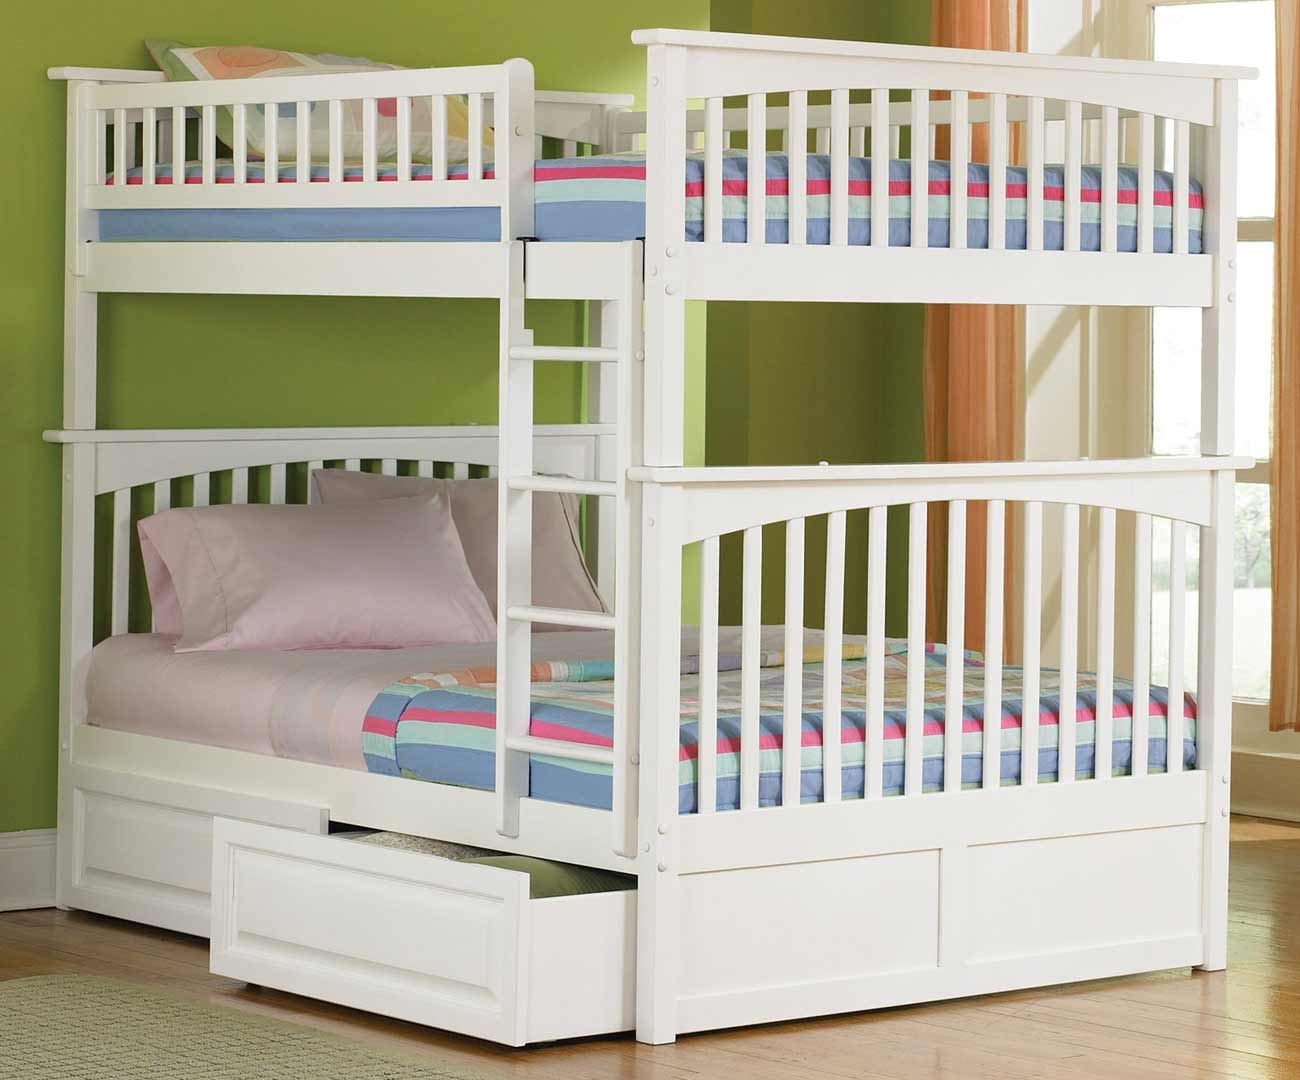 Image of: White Bunk Beds for Teen